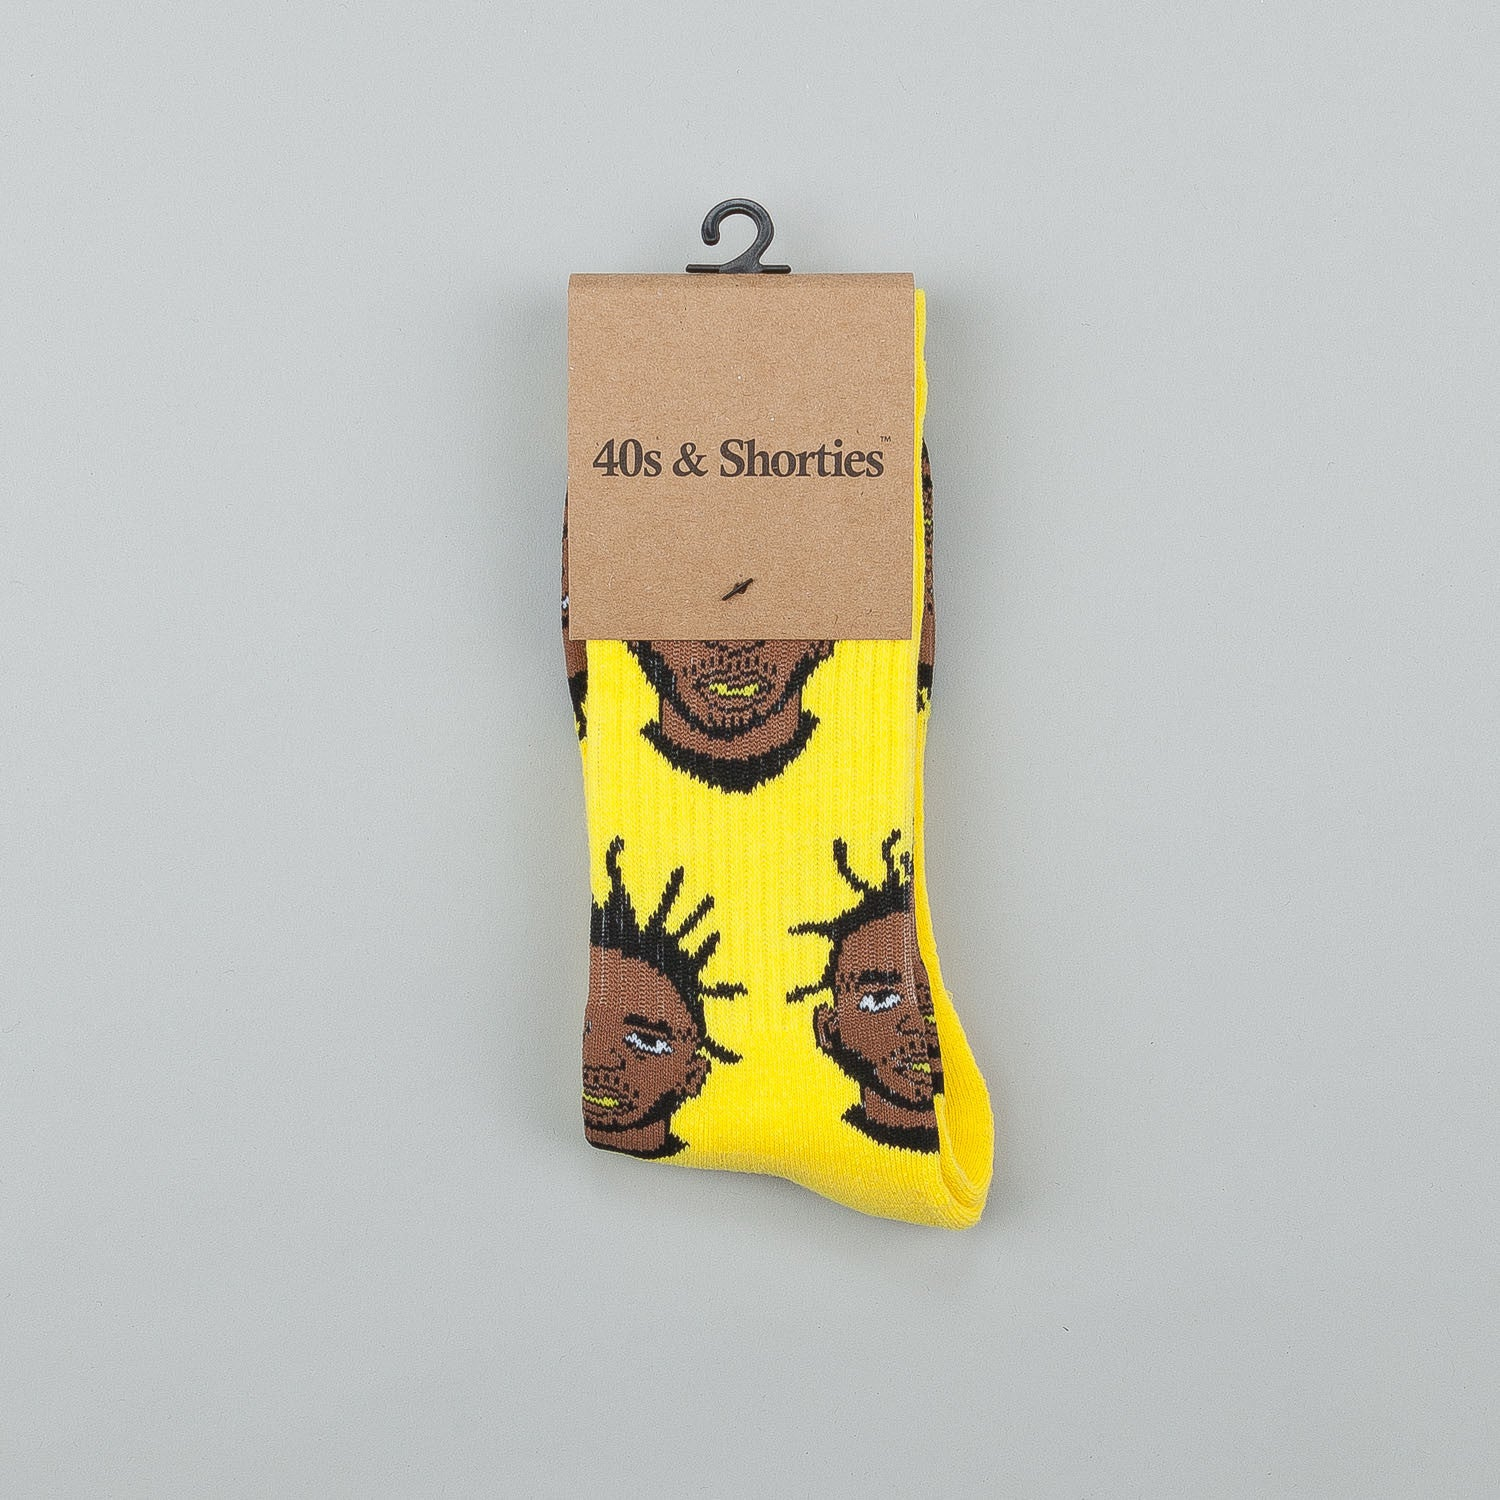 40s & Shorties O.D.B. Socks